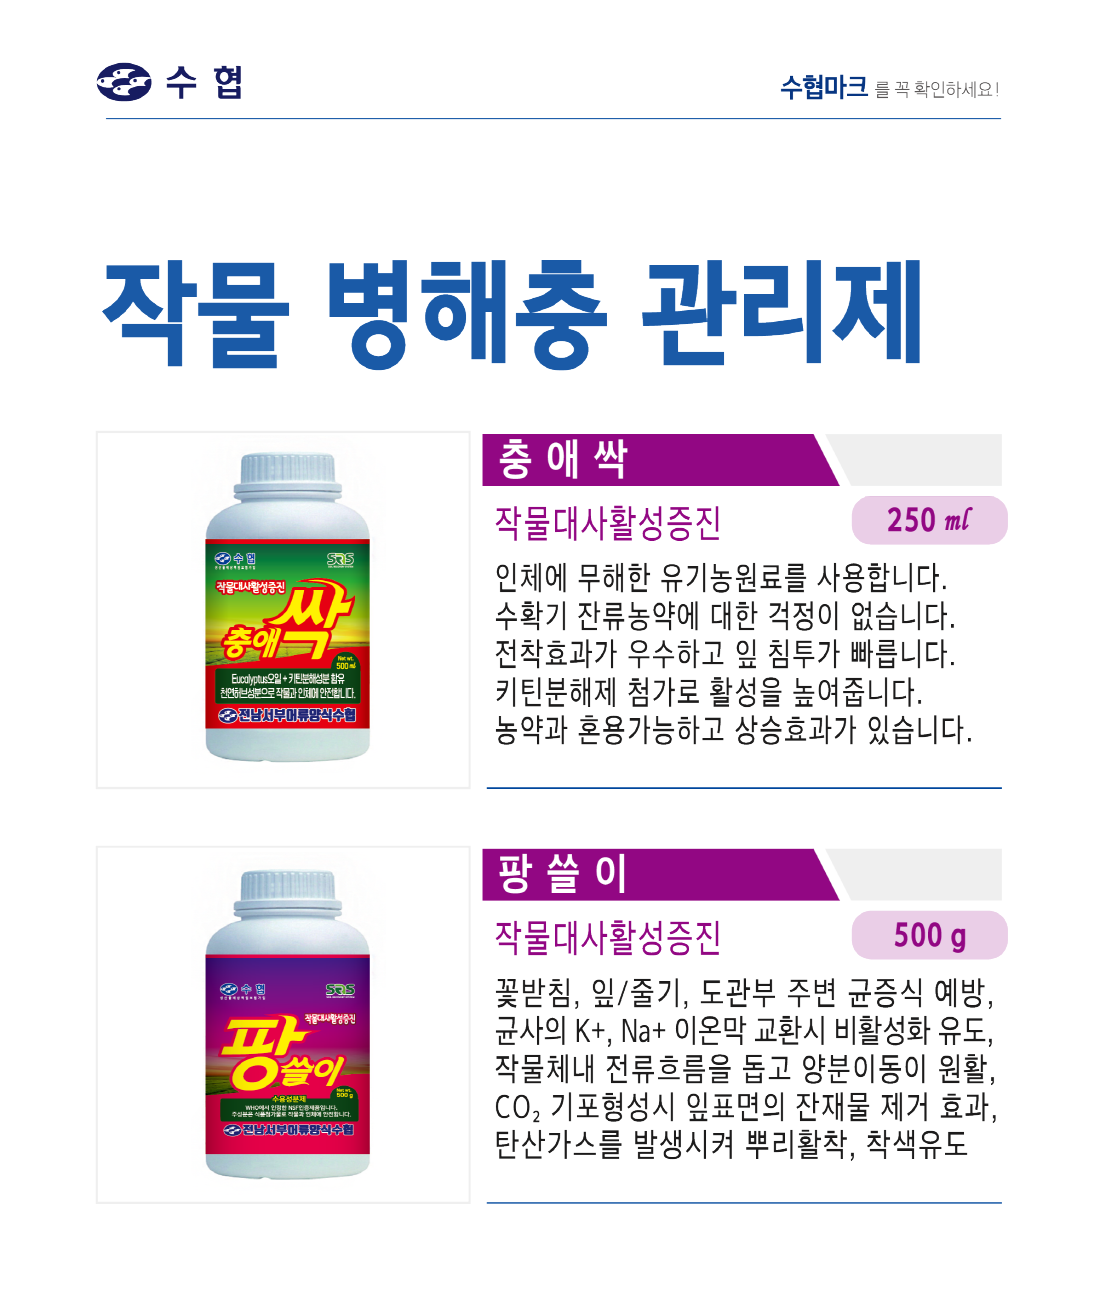 http://suhyup2019.handpr.kr/bs/se2/imgup/1589964680det2_s.png